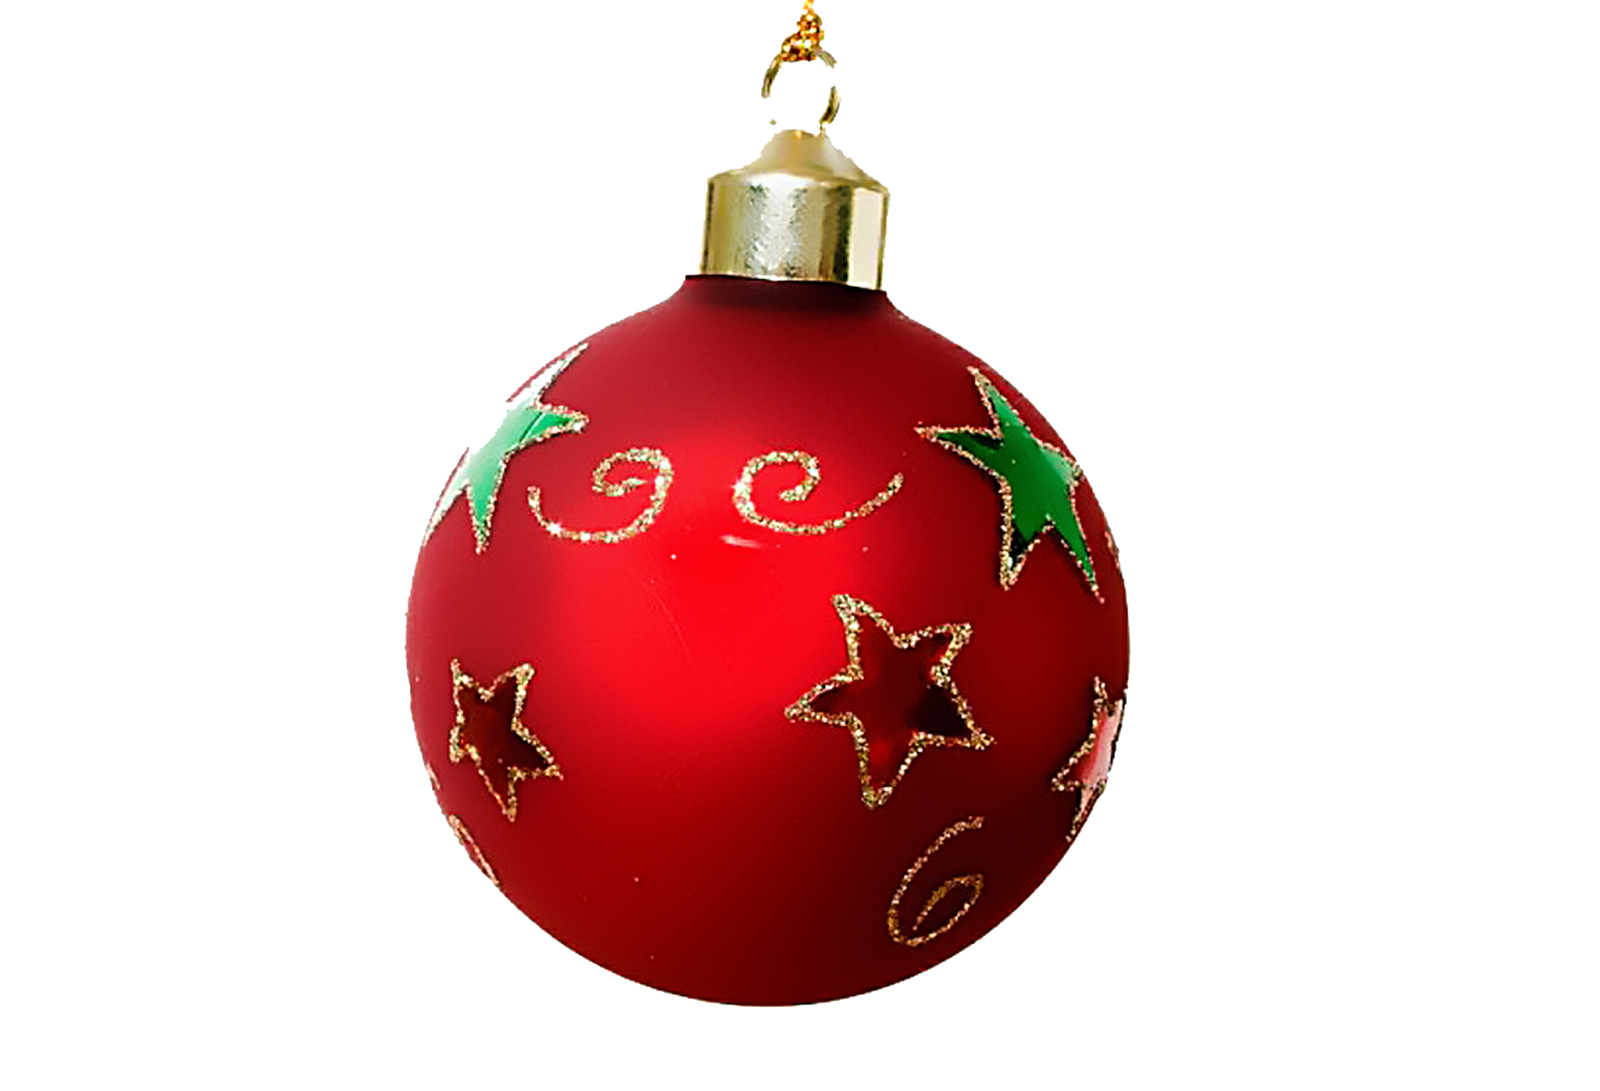 Merry Christmas clipart high resolution Merry Year: Balls Chrismast and